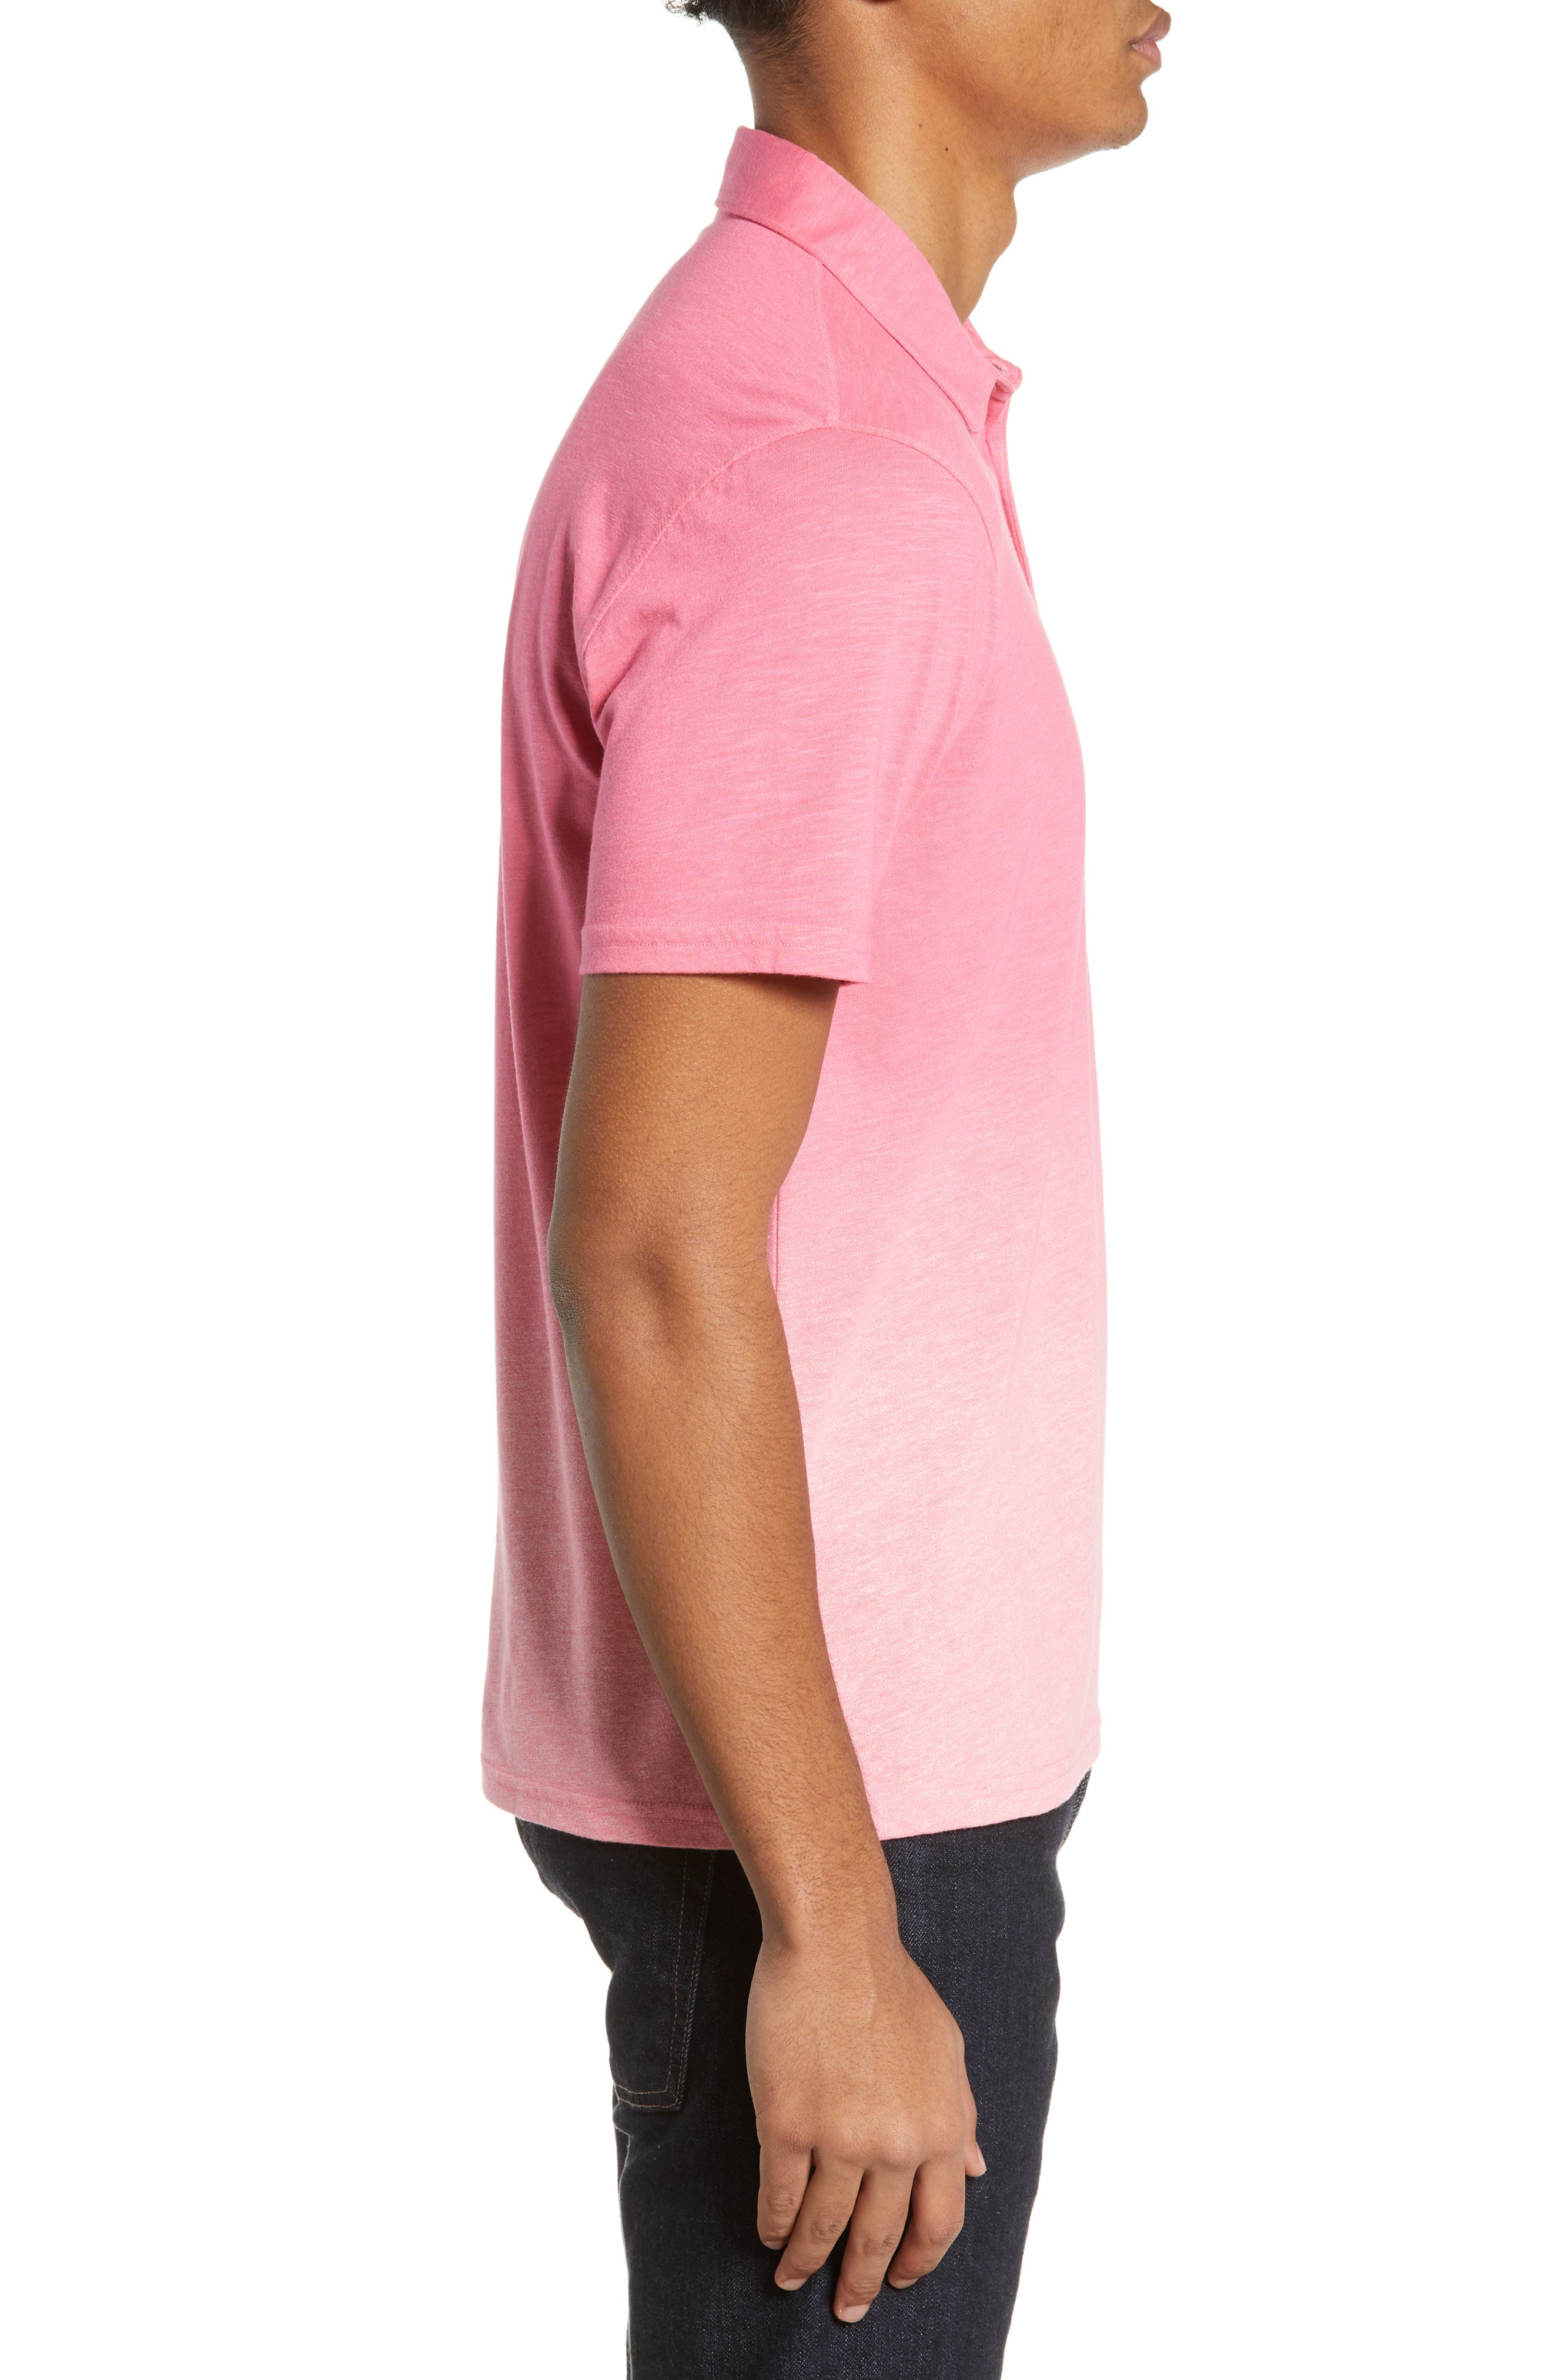 ZACHARY PRELL, Shelter Island Dip Dye Polo, Alternate thumbnail 3, color, BRIGHT PINK